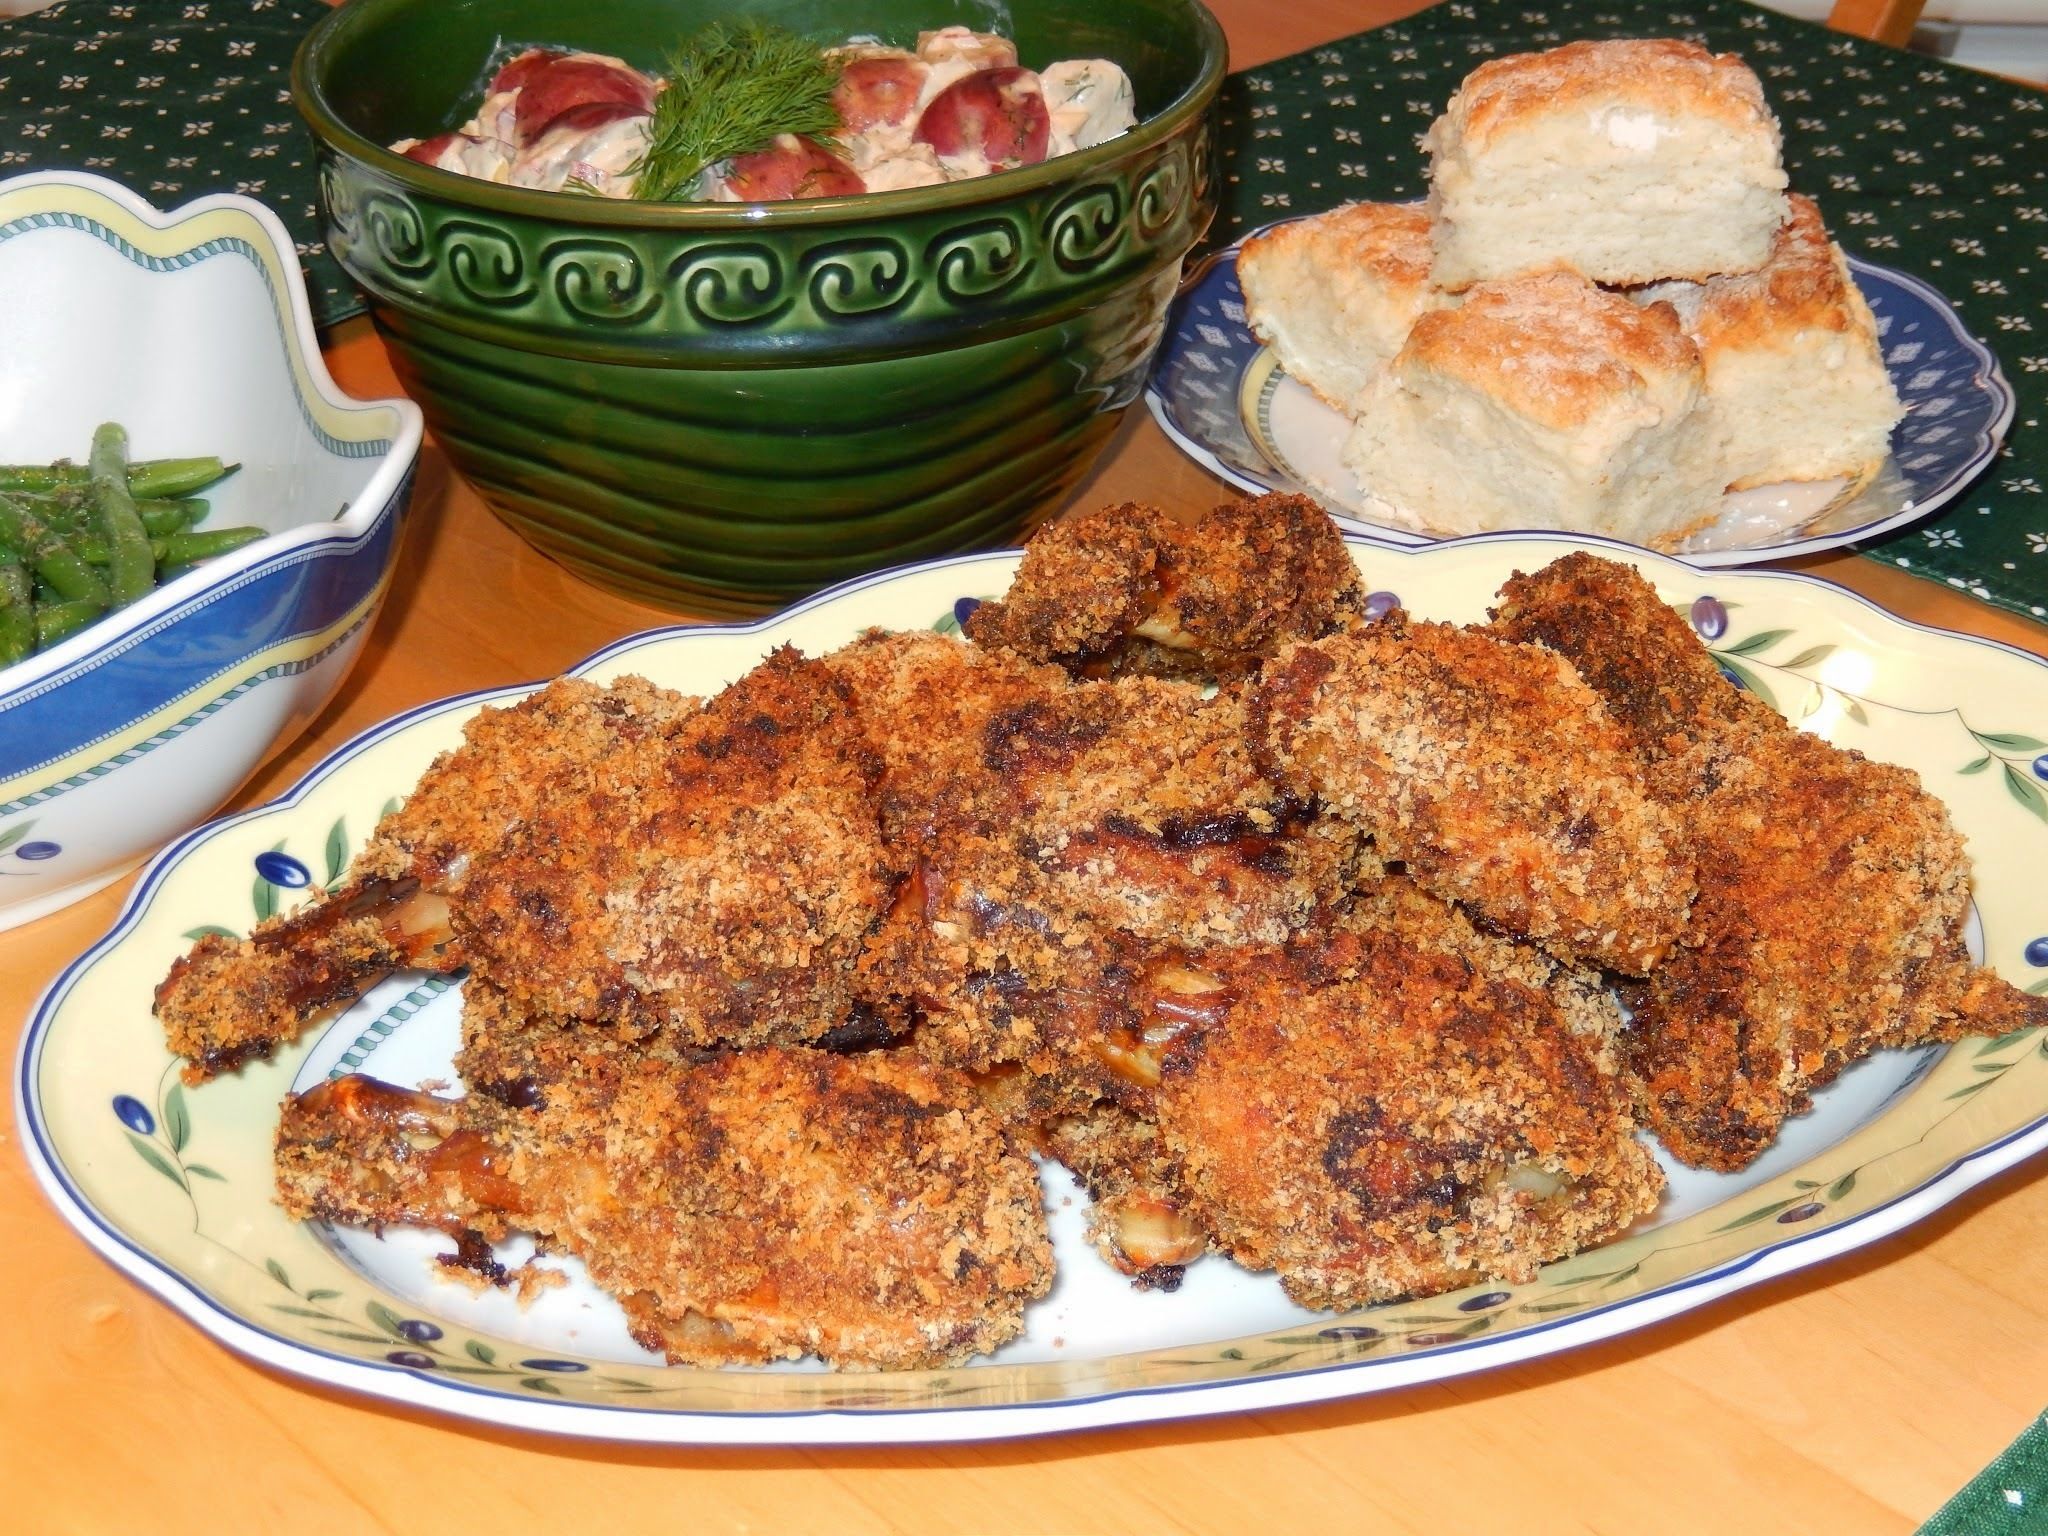 Picnic Chicken aka Crispy Oven-Fried Chicken